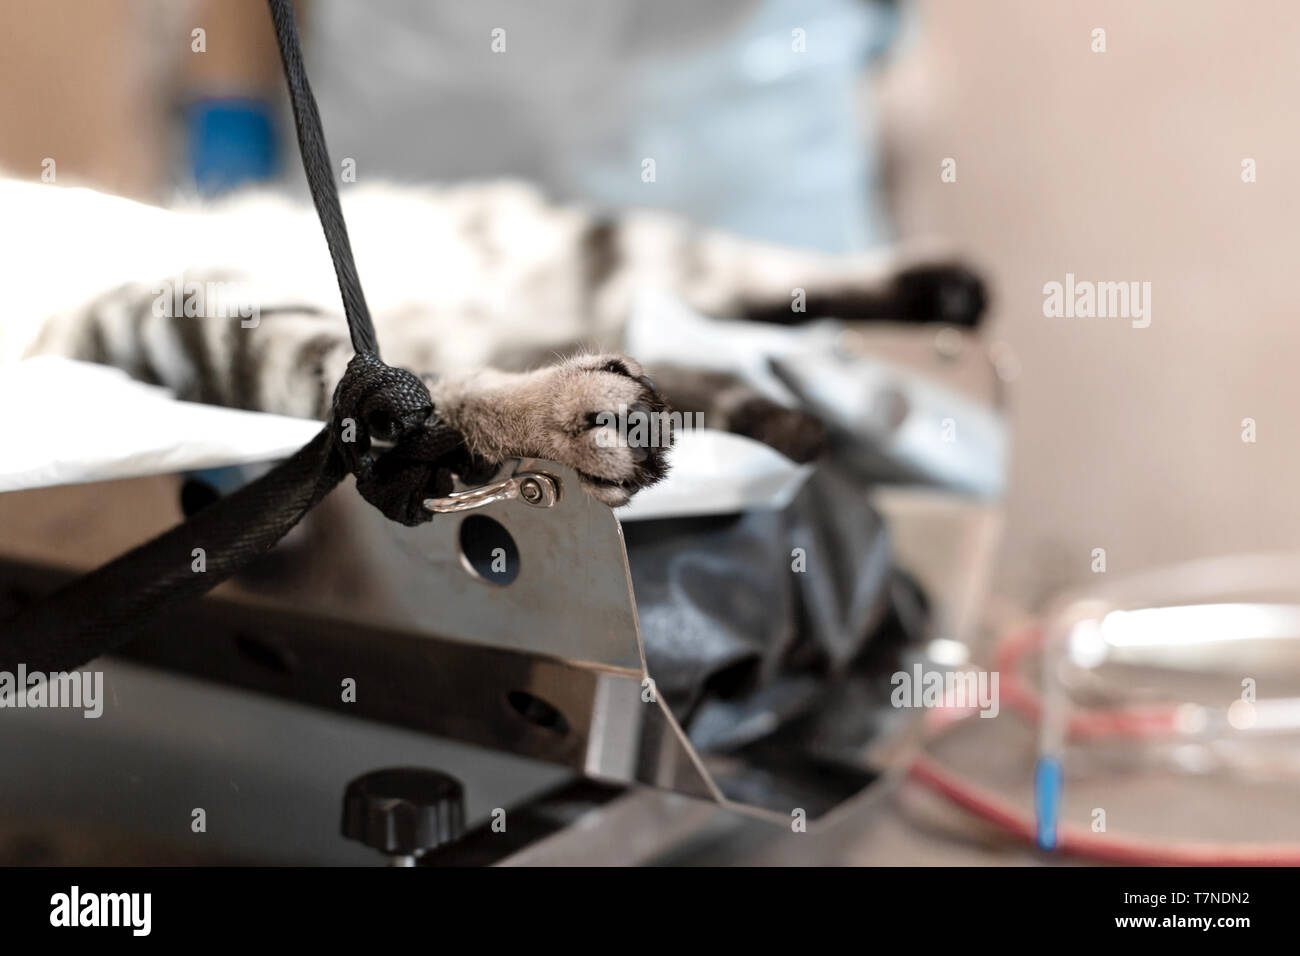 cat under general anesthesia on the operating table. Pet surgery. - Stock Image